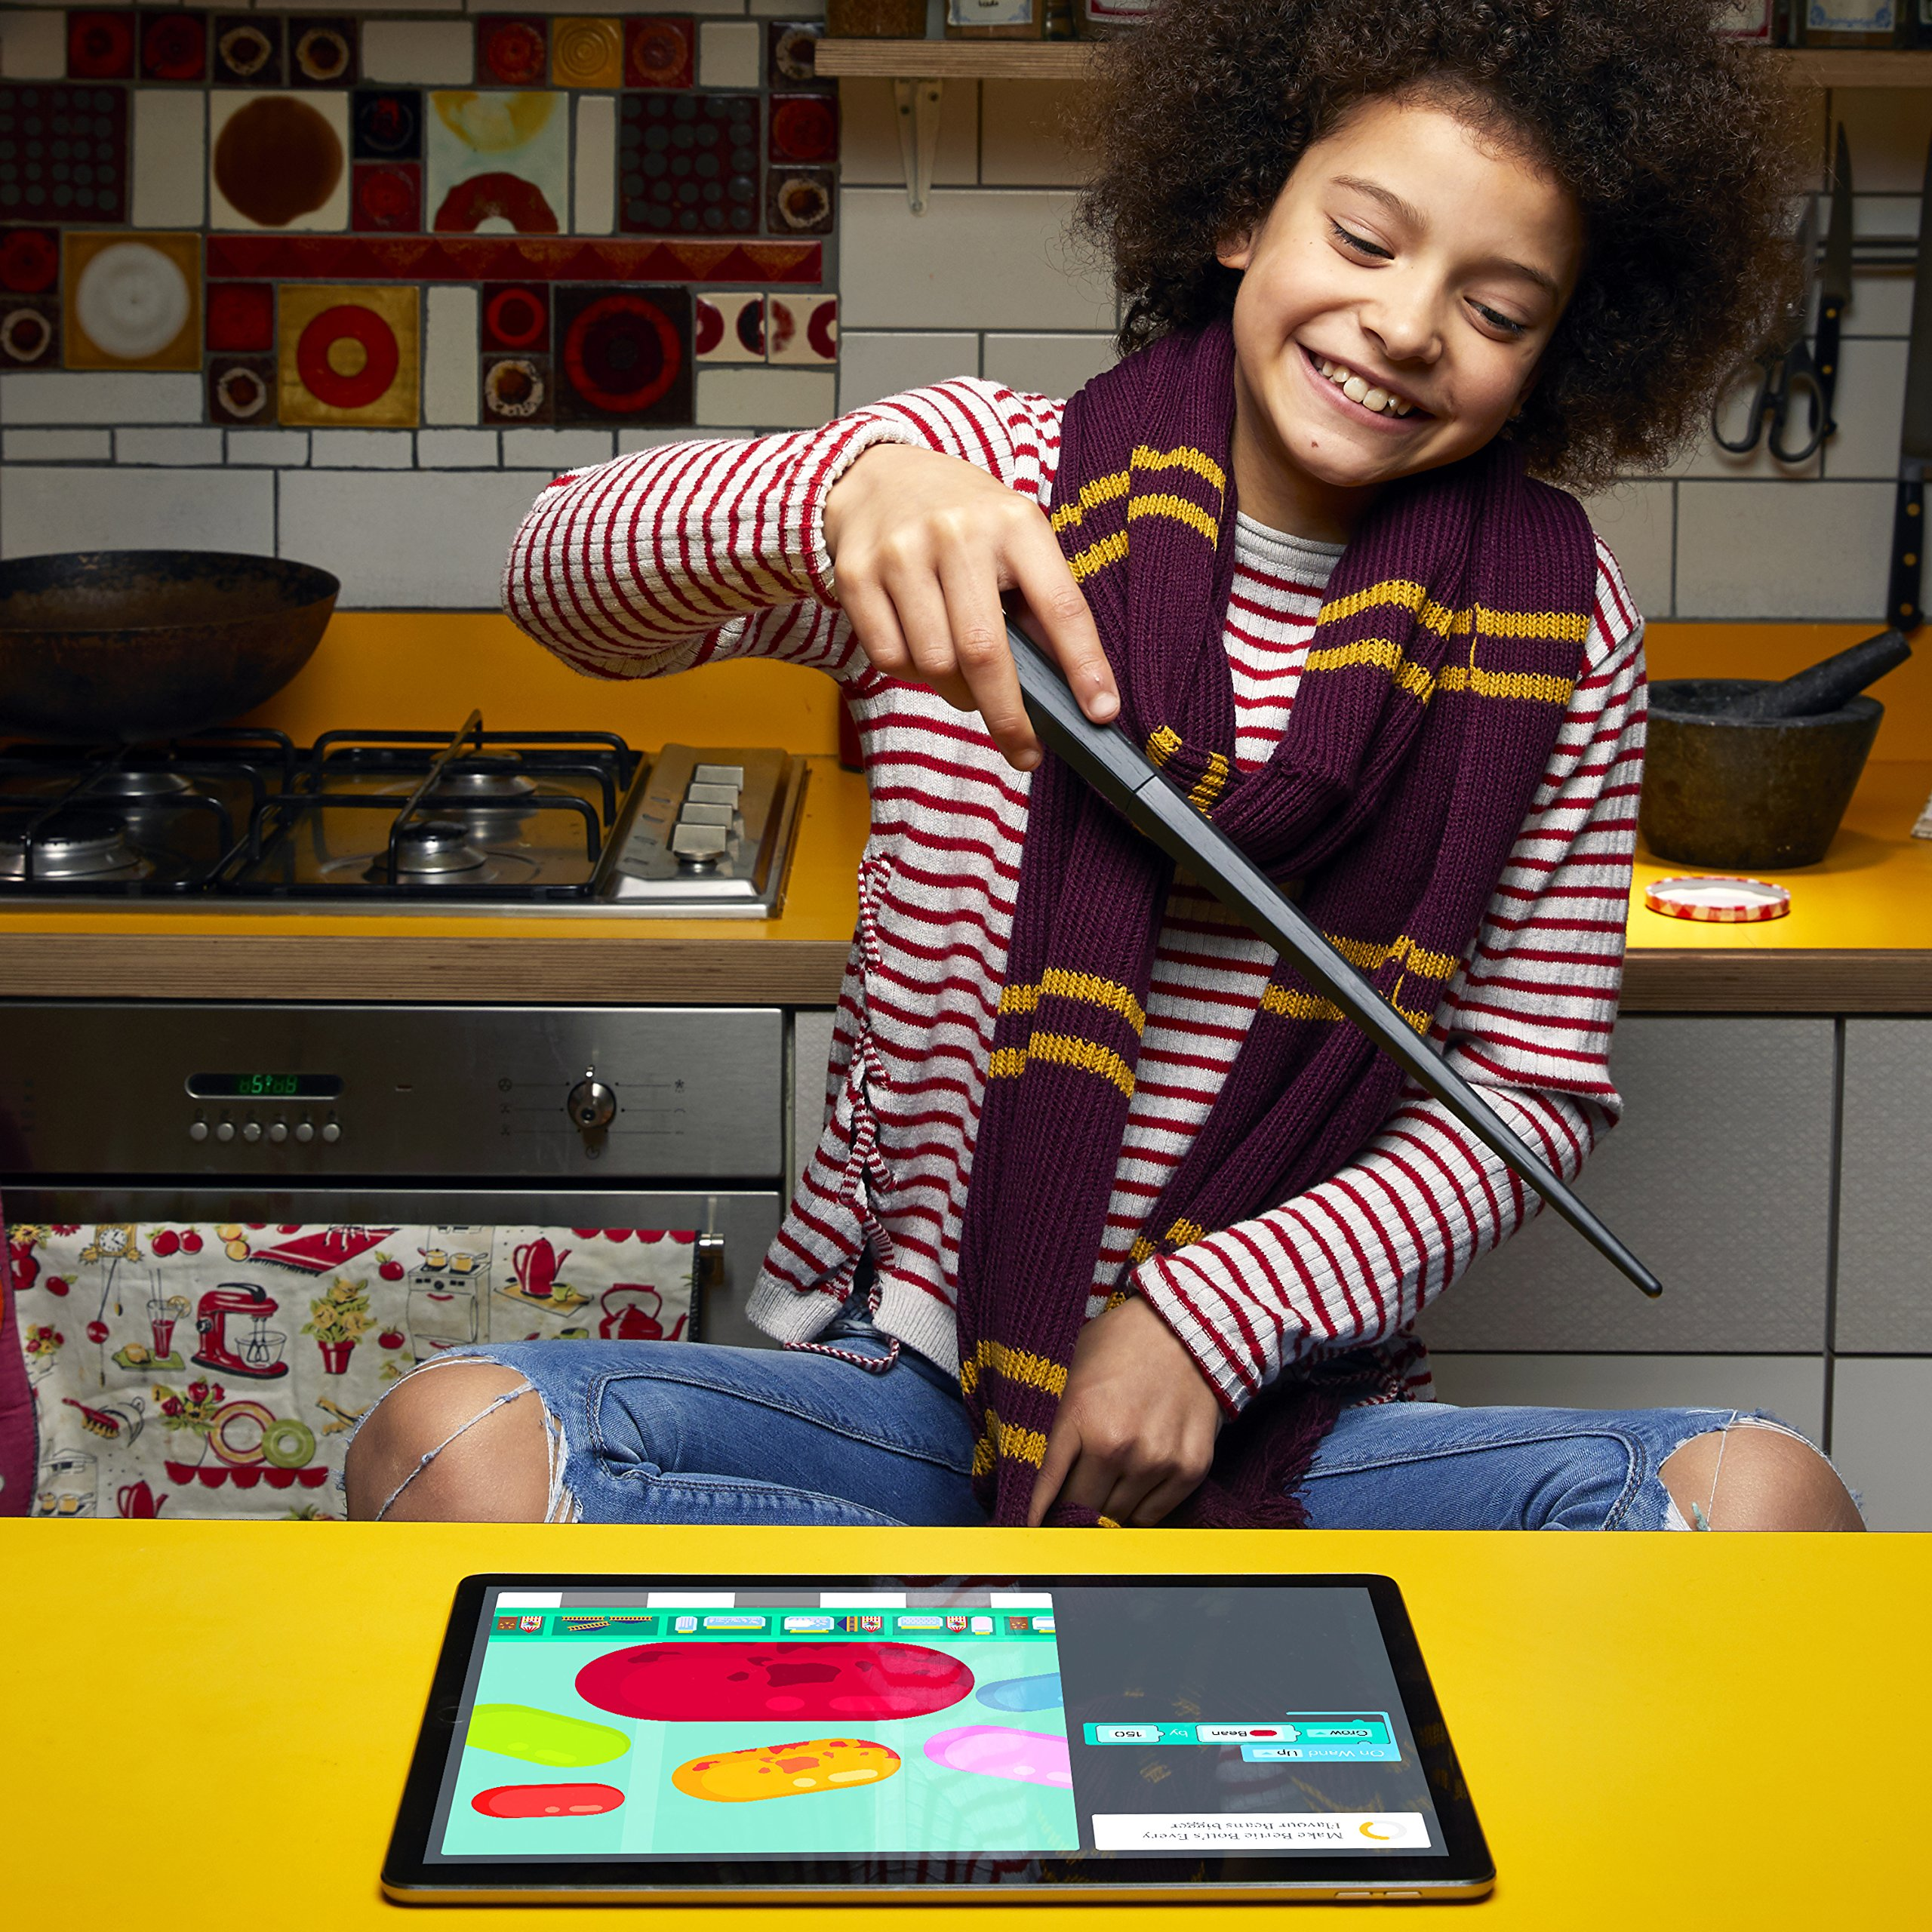 Kano Harry Potter Coding Kit – Build a Wand. Learn To Code. Make Magic. by Kano (Image #8)